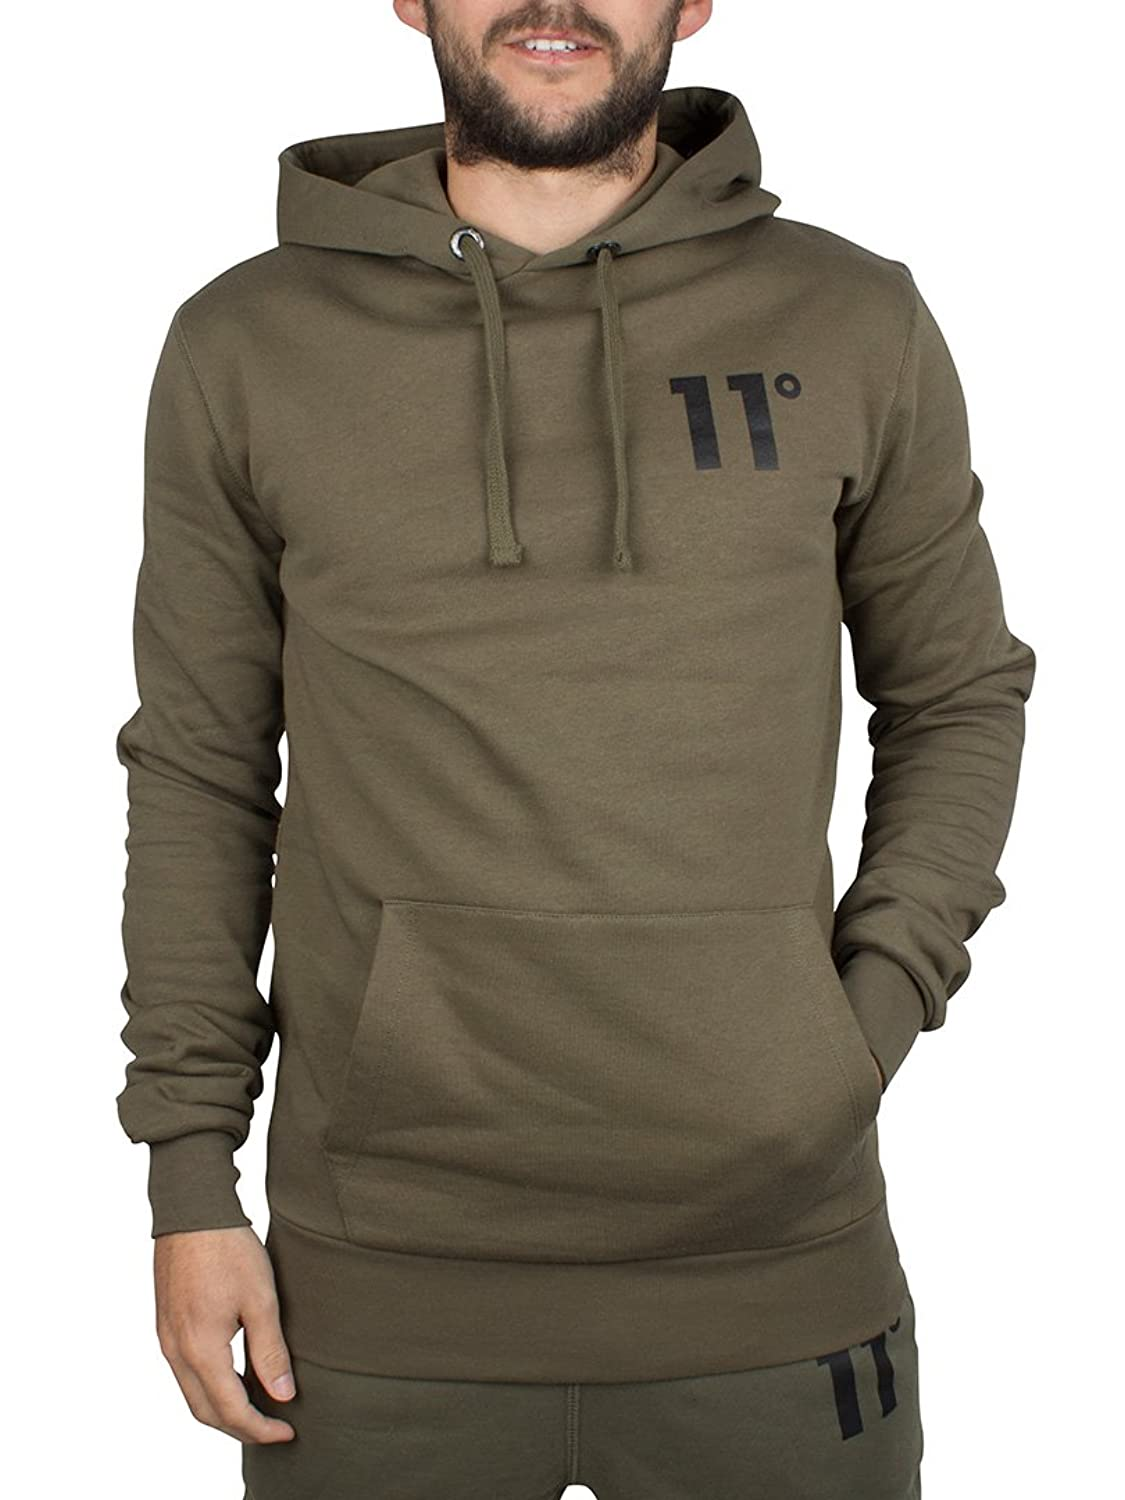 11 Degrees Men's Core Logo Pull Over Hoodie, Green 60%OFF